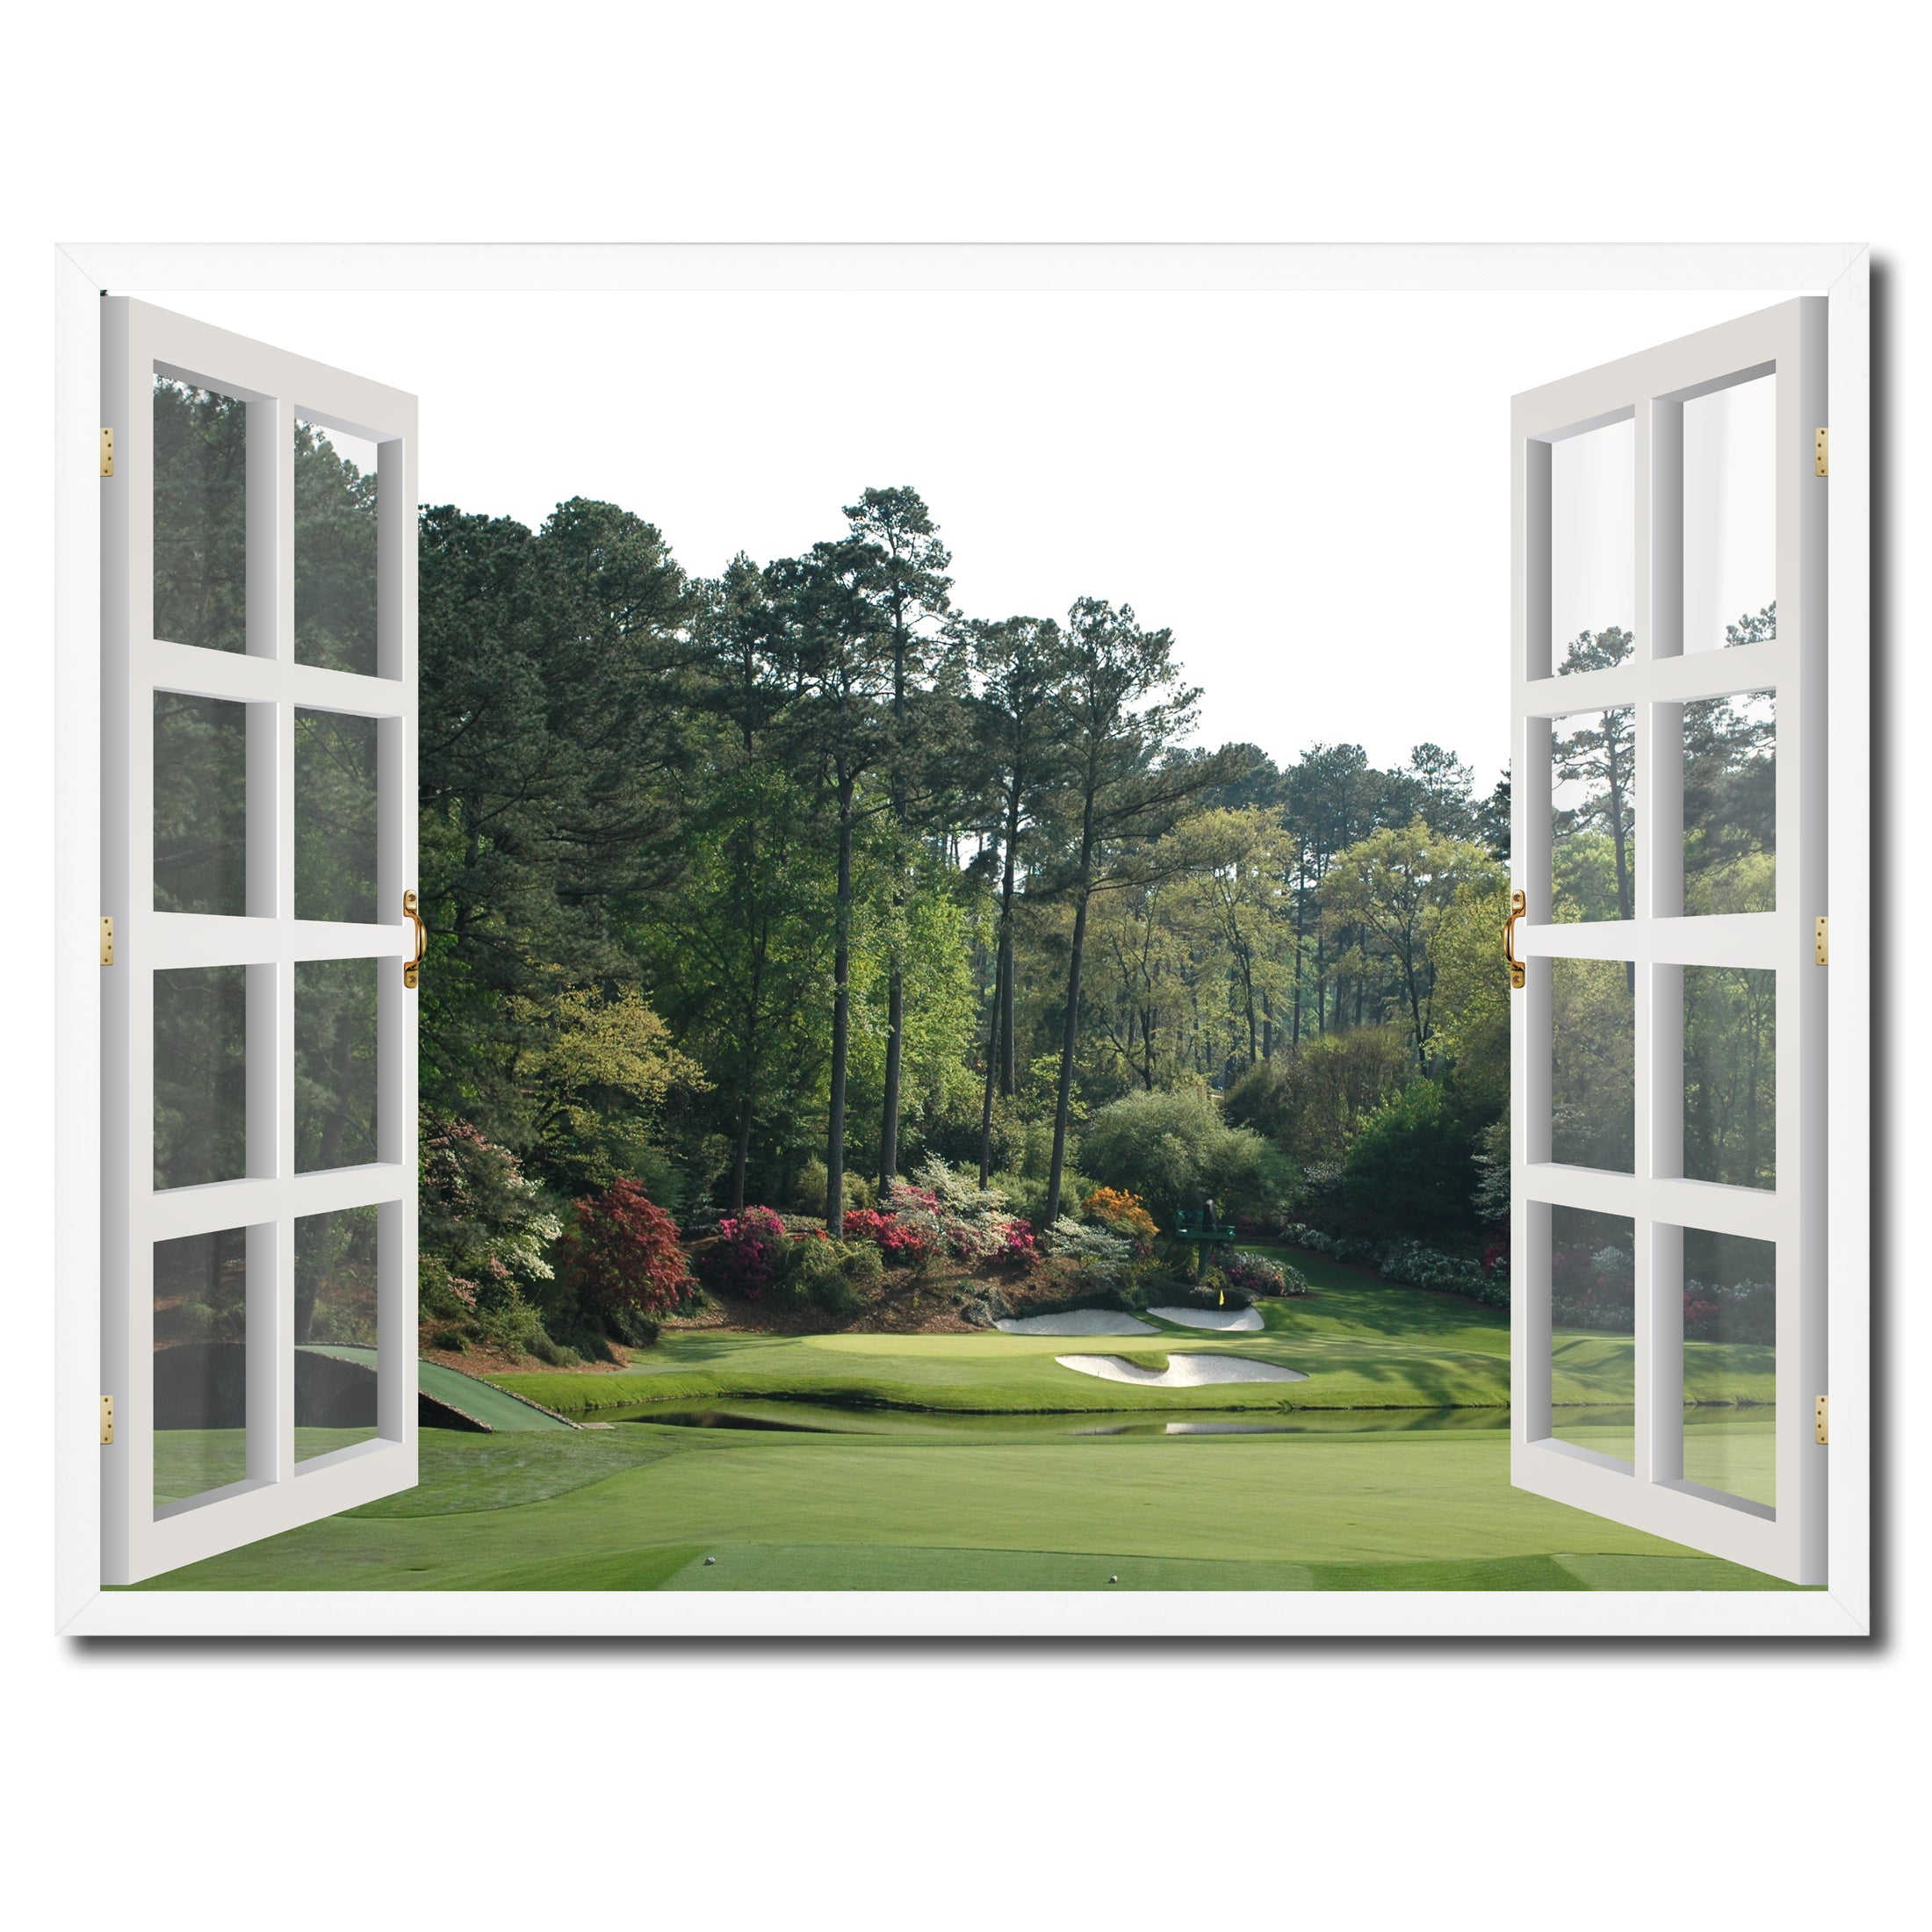 Masters Hole Augusta Picture Window Wall Art Home Decor Gift Ideas on kitchen valance ideas, kitchen door ideas, kitchen backsplash ideas, kitchen panel ideas, kitchen decorating ideas, kitchen bar ideas, kitchen railing ideas, master bedroom ideas, pass through kitchen remodel ideas, kitchen counter ideas, kitchen tree ideas, kitchen garden windows home depot, kitchen wood ideas, kitchen electrical ideas, kitchen flooring ideas, kitchen skylight ideas, kitchen tools ideas, kitchen bay windows, kitchen plate ideas, kitchen stove ideas,